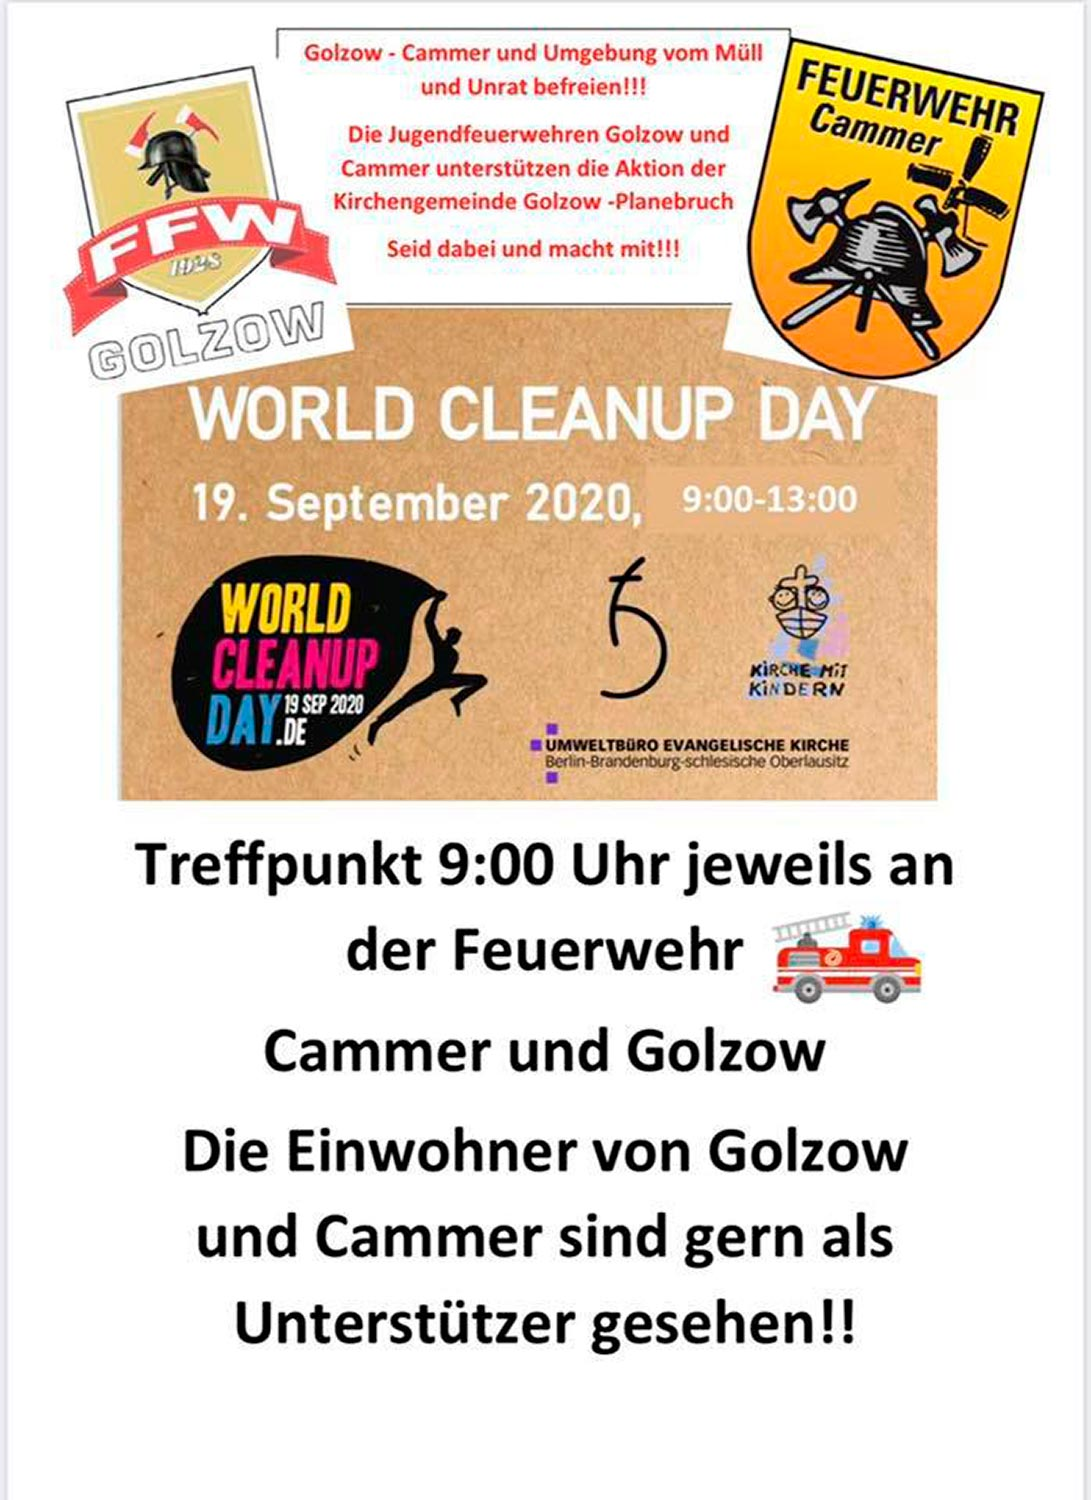 Cleanup-Day-Cammer-Golzow